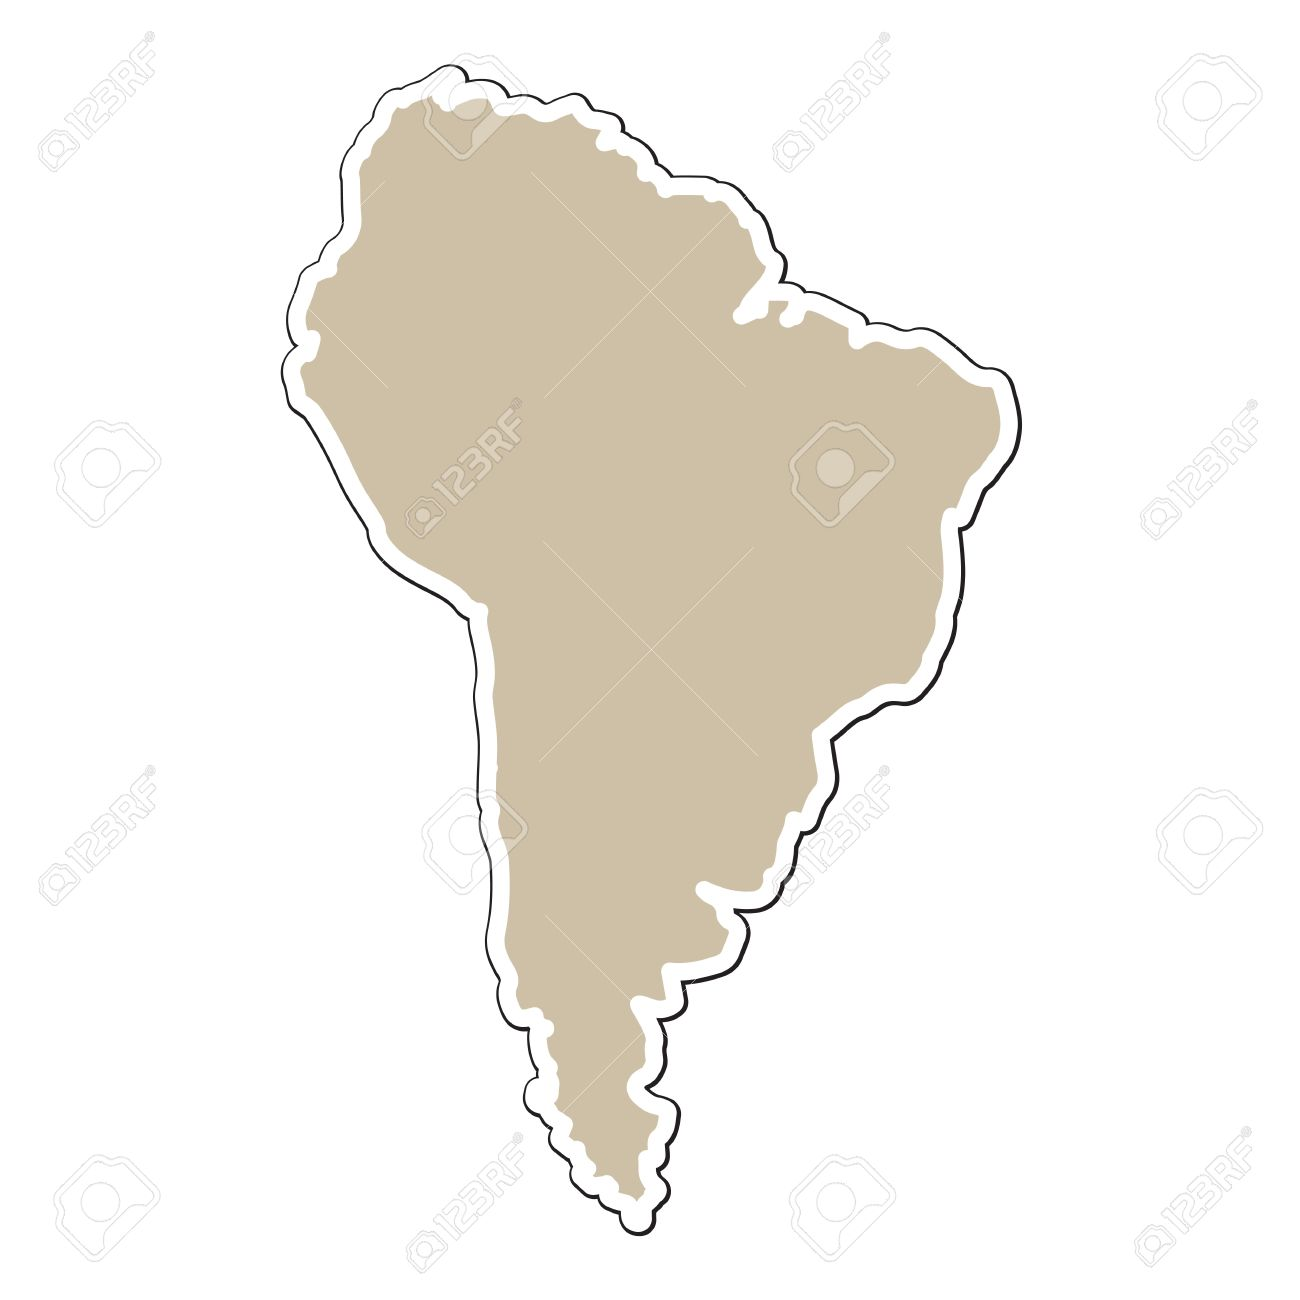 North And South America Map Outline Download Free North America - South america map outline